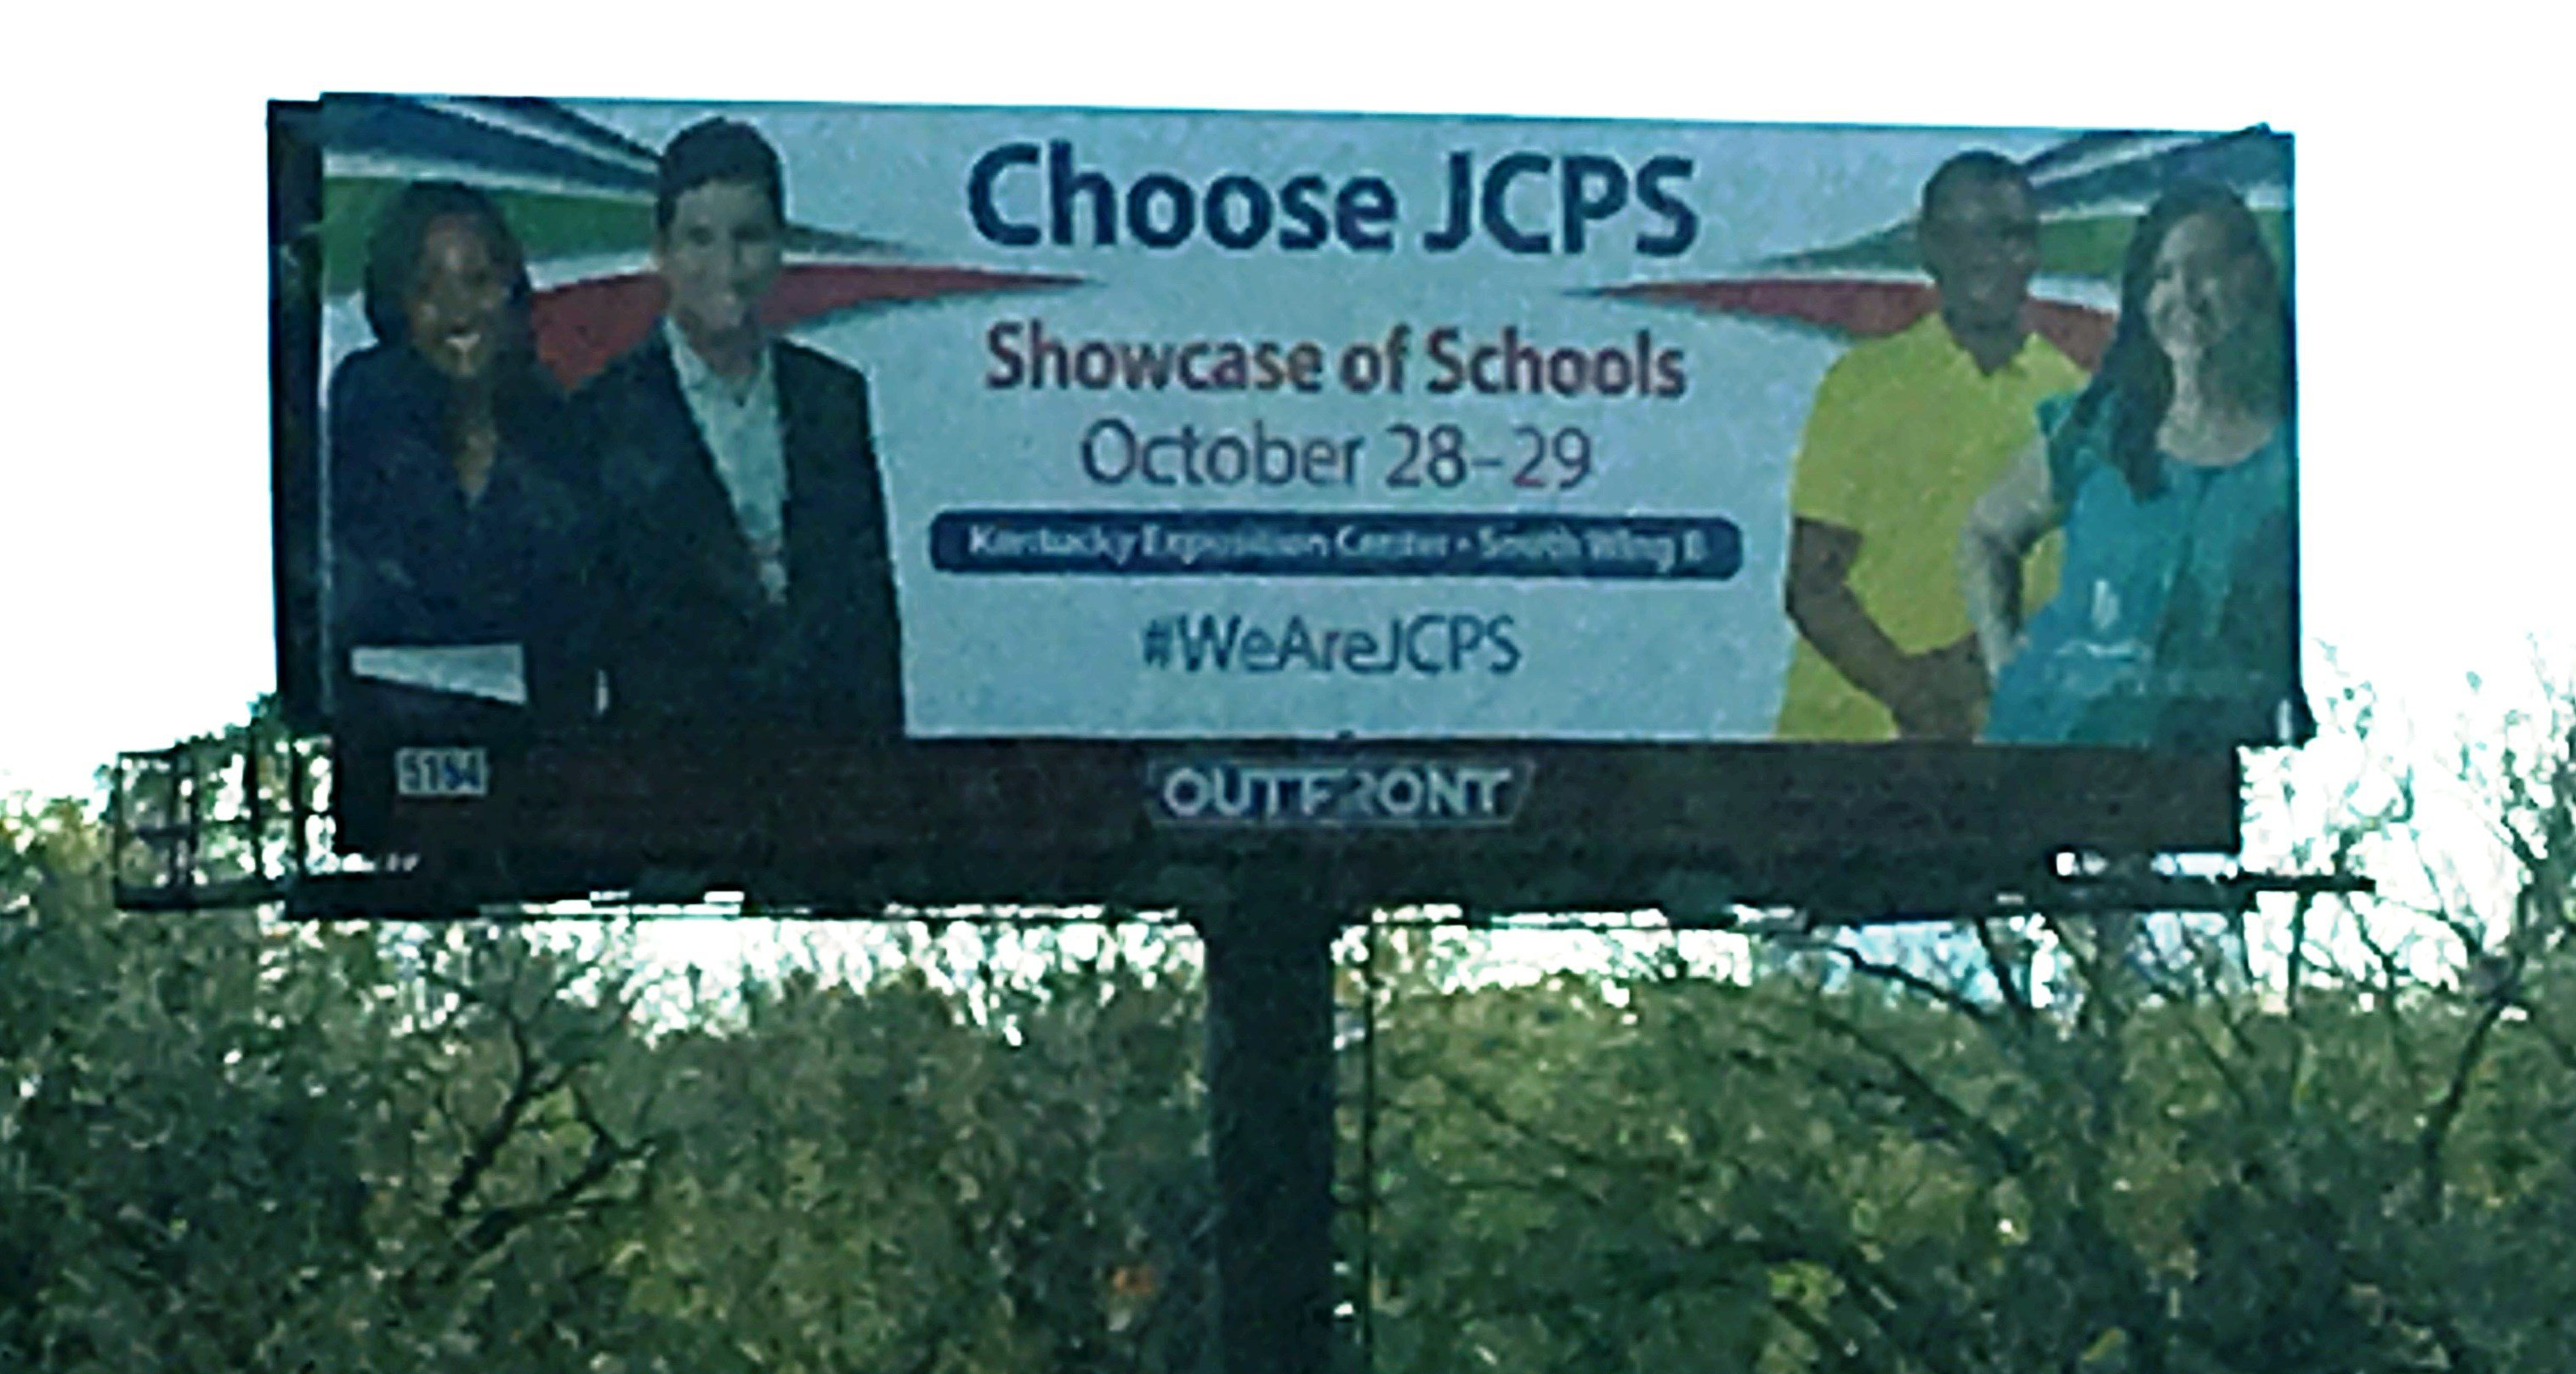 A billboard advertises the JCPS Showcase of Schools off I-64 in west Louisville.